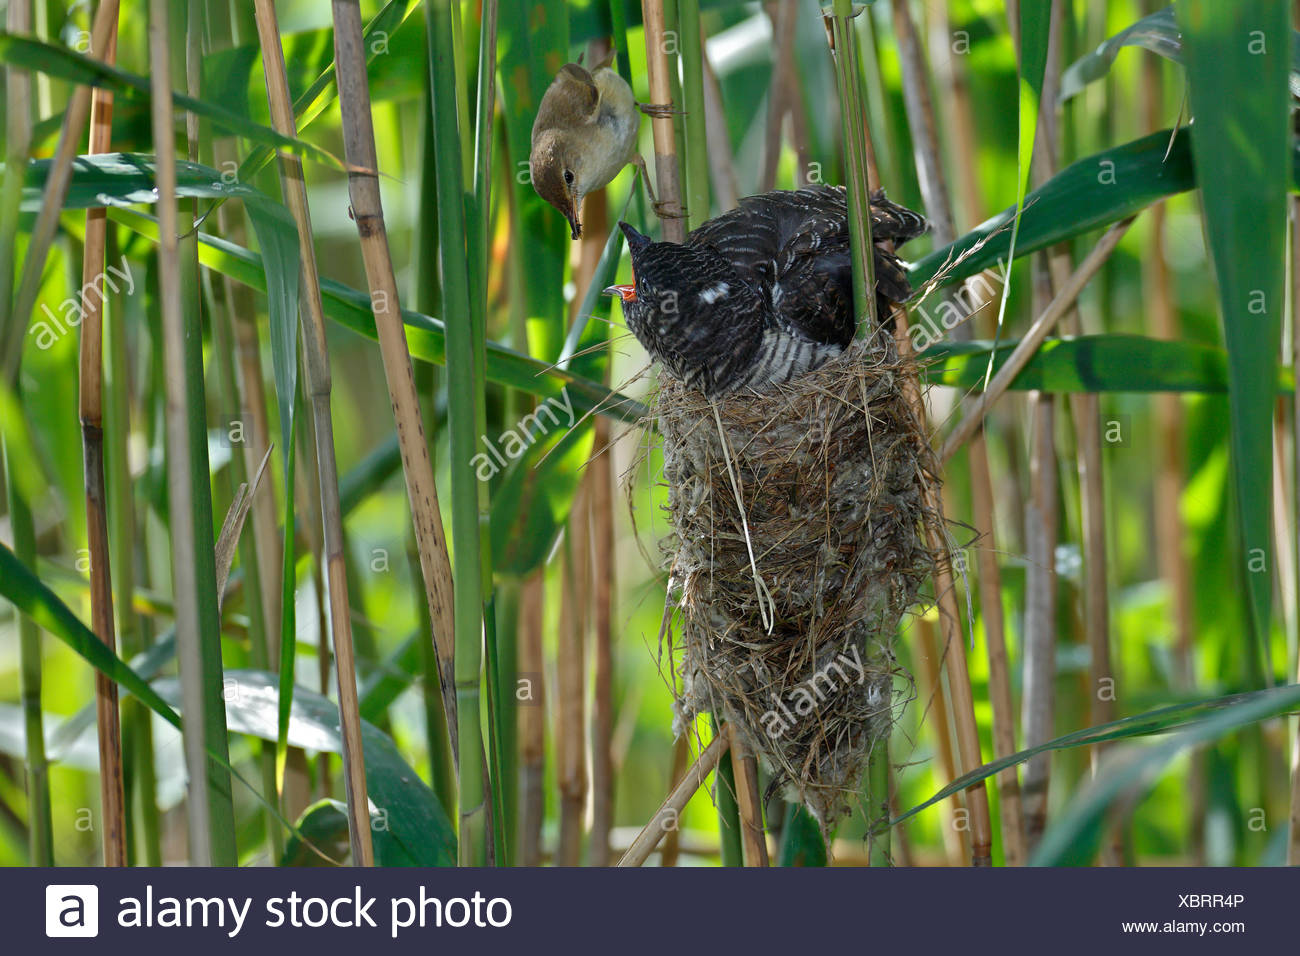 A young Common Cuckoo (Cuculus canorus) is fed by its host, a Eurasian Reed Warbler (Acrocephalus scirpaceus), Saxony-Anhalt - Stock Image